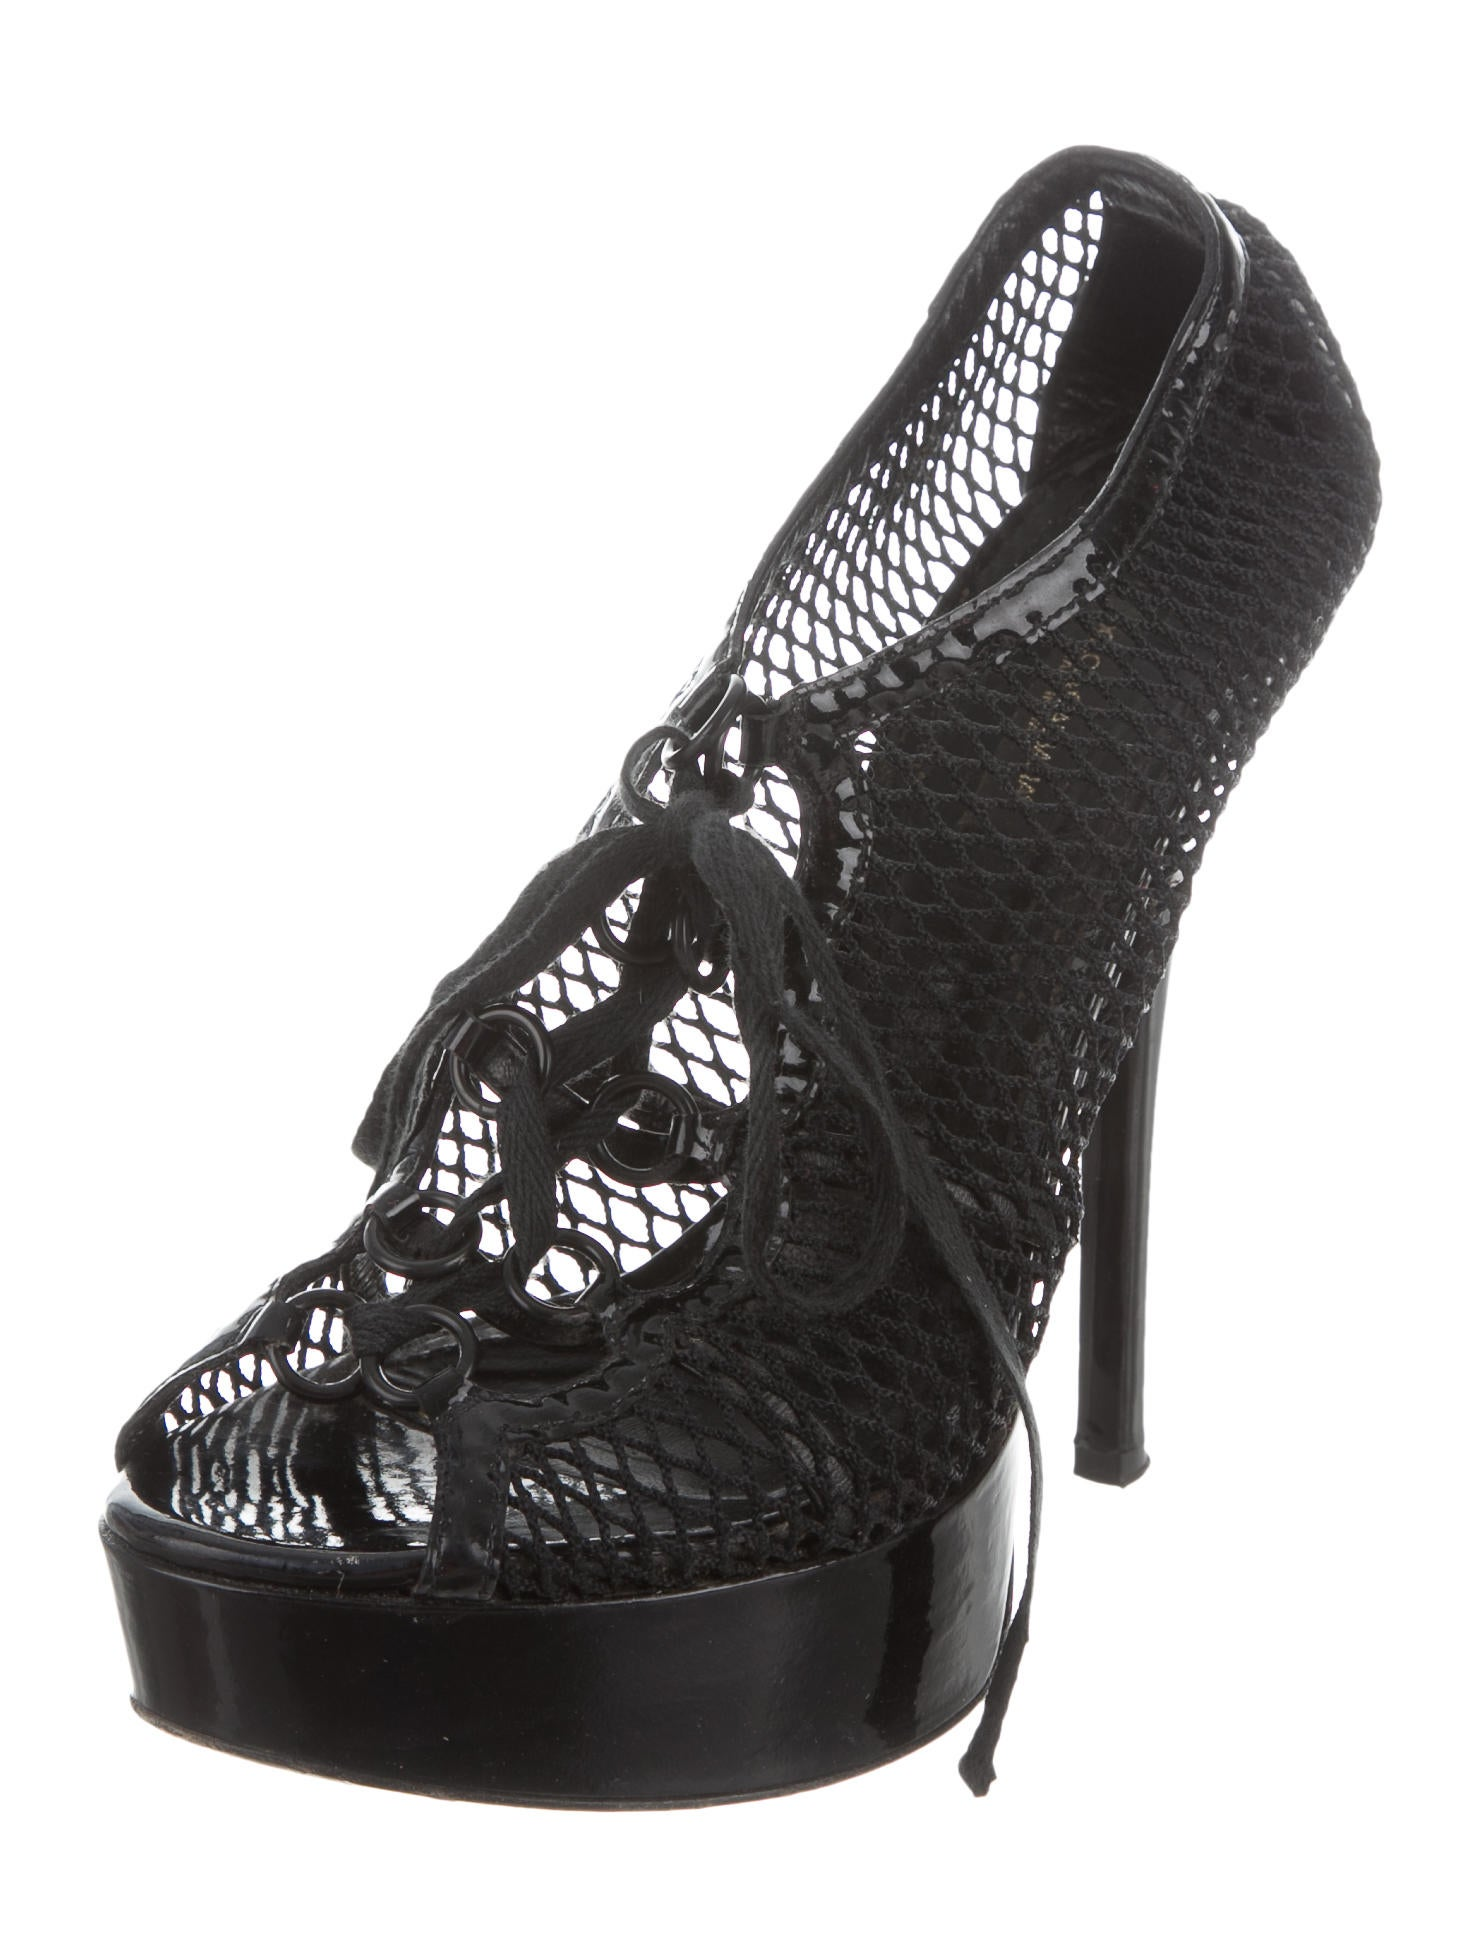 Dolce gabbana fish net platform booties shoes for Platform shoes with fish